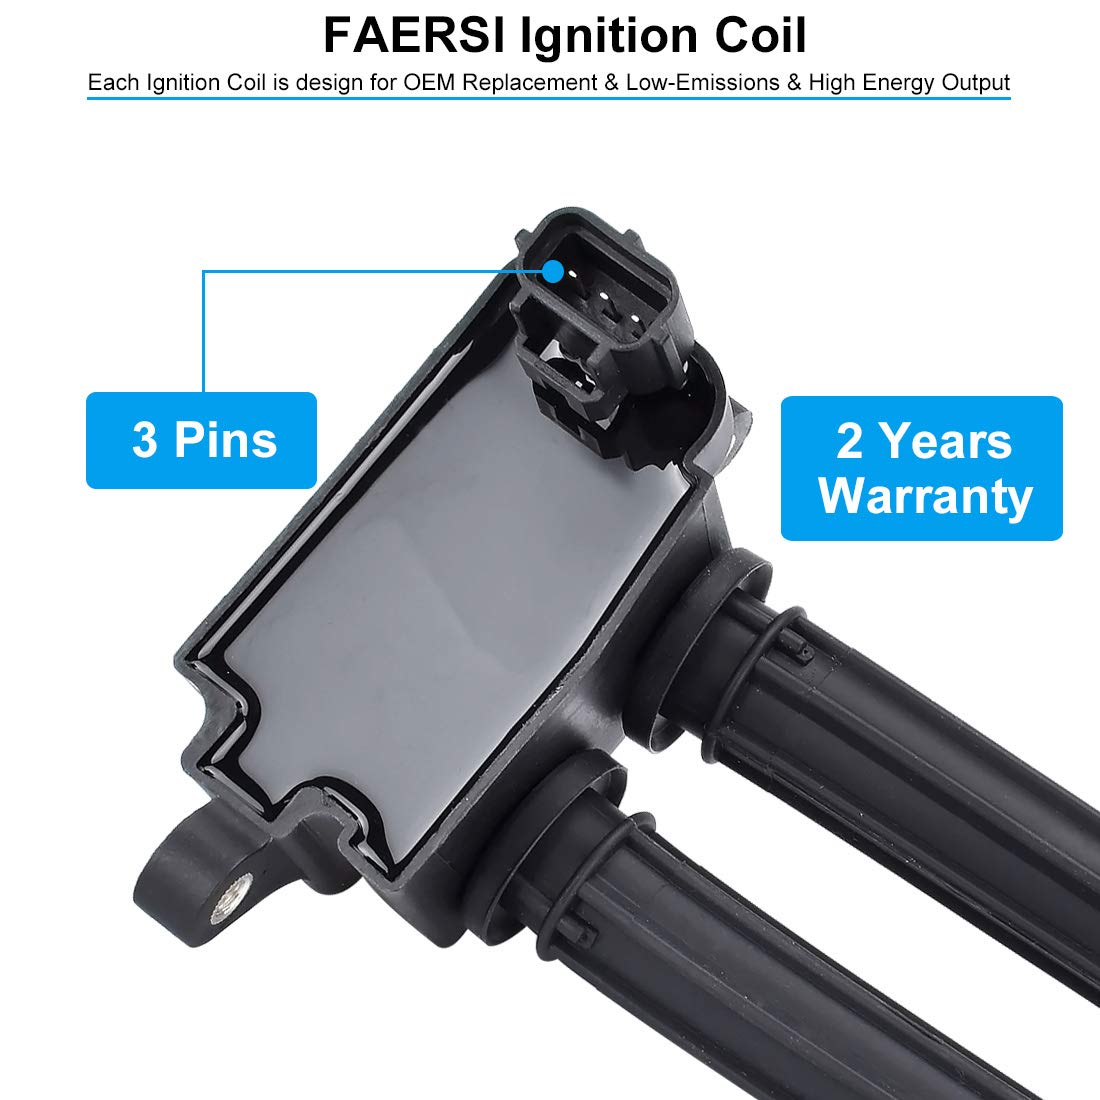 FAERSI Ignition Coil Pack of 6 Replaces OE# UF401 IGC0007